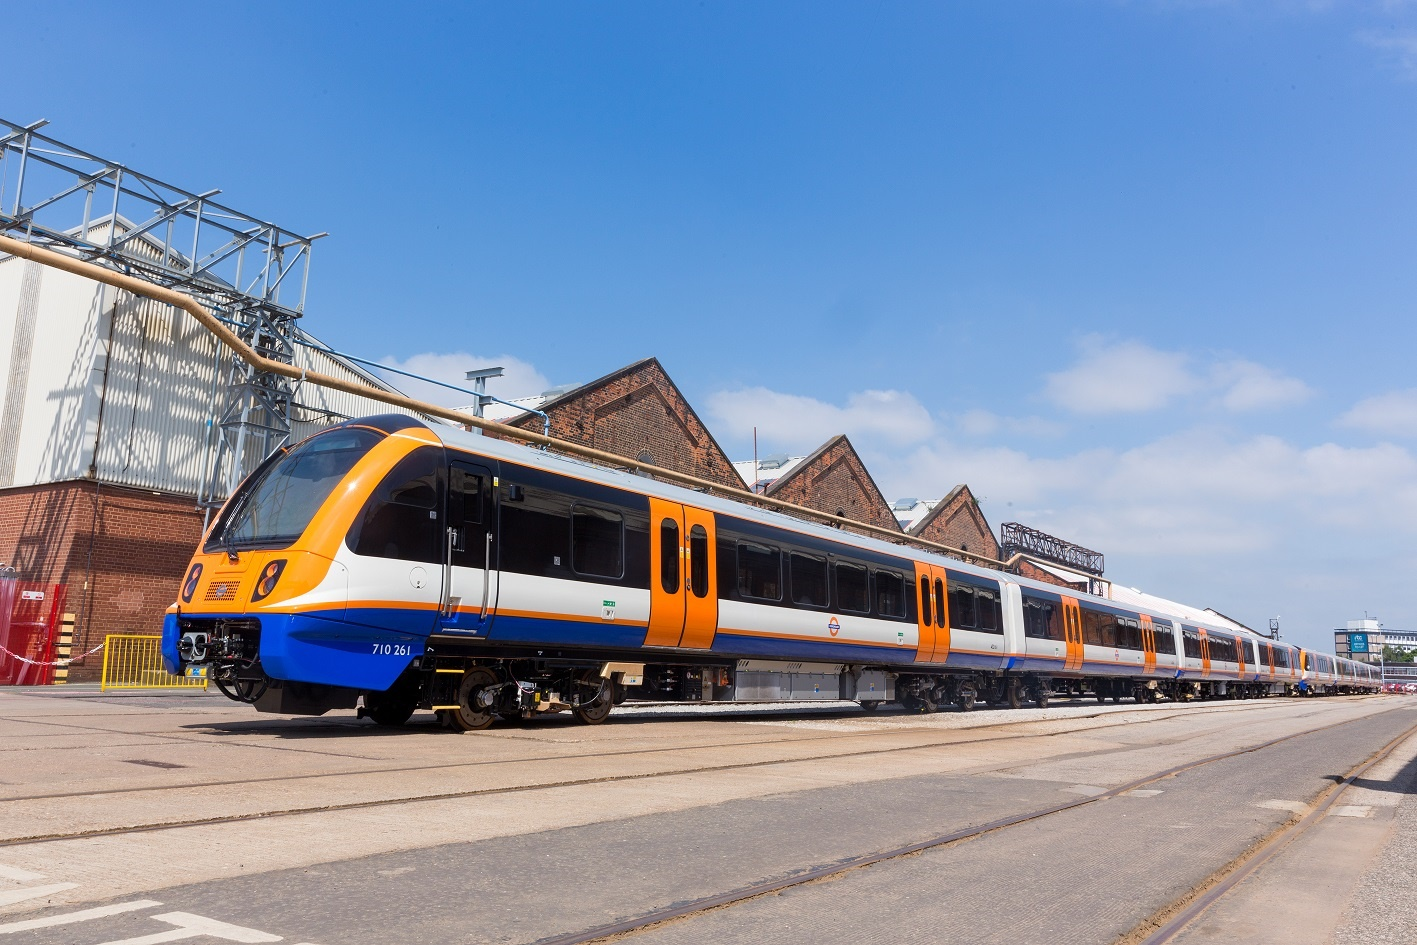 Heavy delays to new trains forces TfL to bring in temporary replacements on London Overground